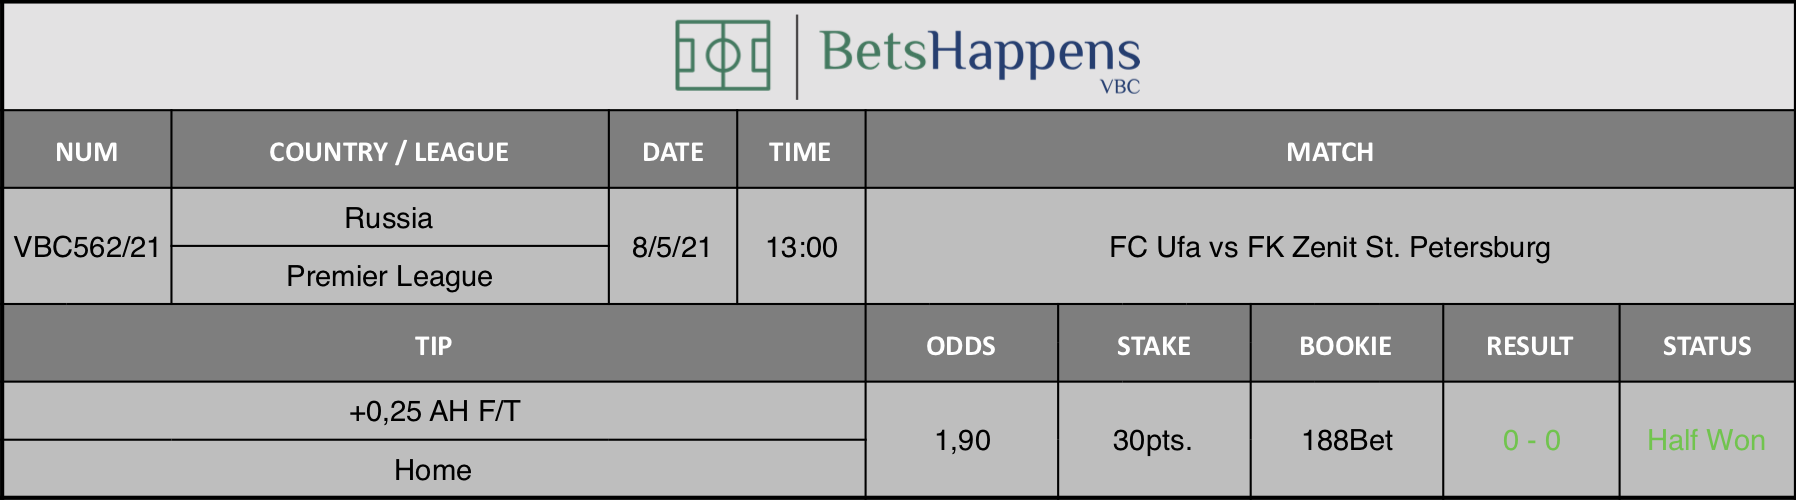 Results of our tip for the FC Ufa vs FK Zenit St. Petersburg match where +0,25 AH F/T  Home is recommended.